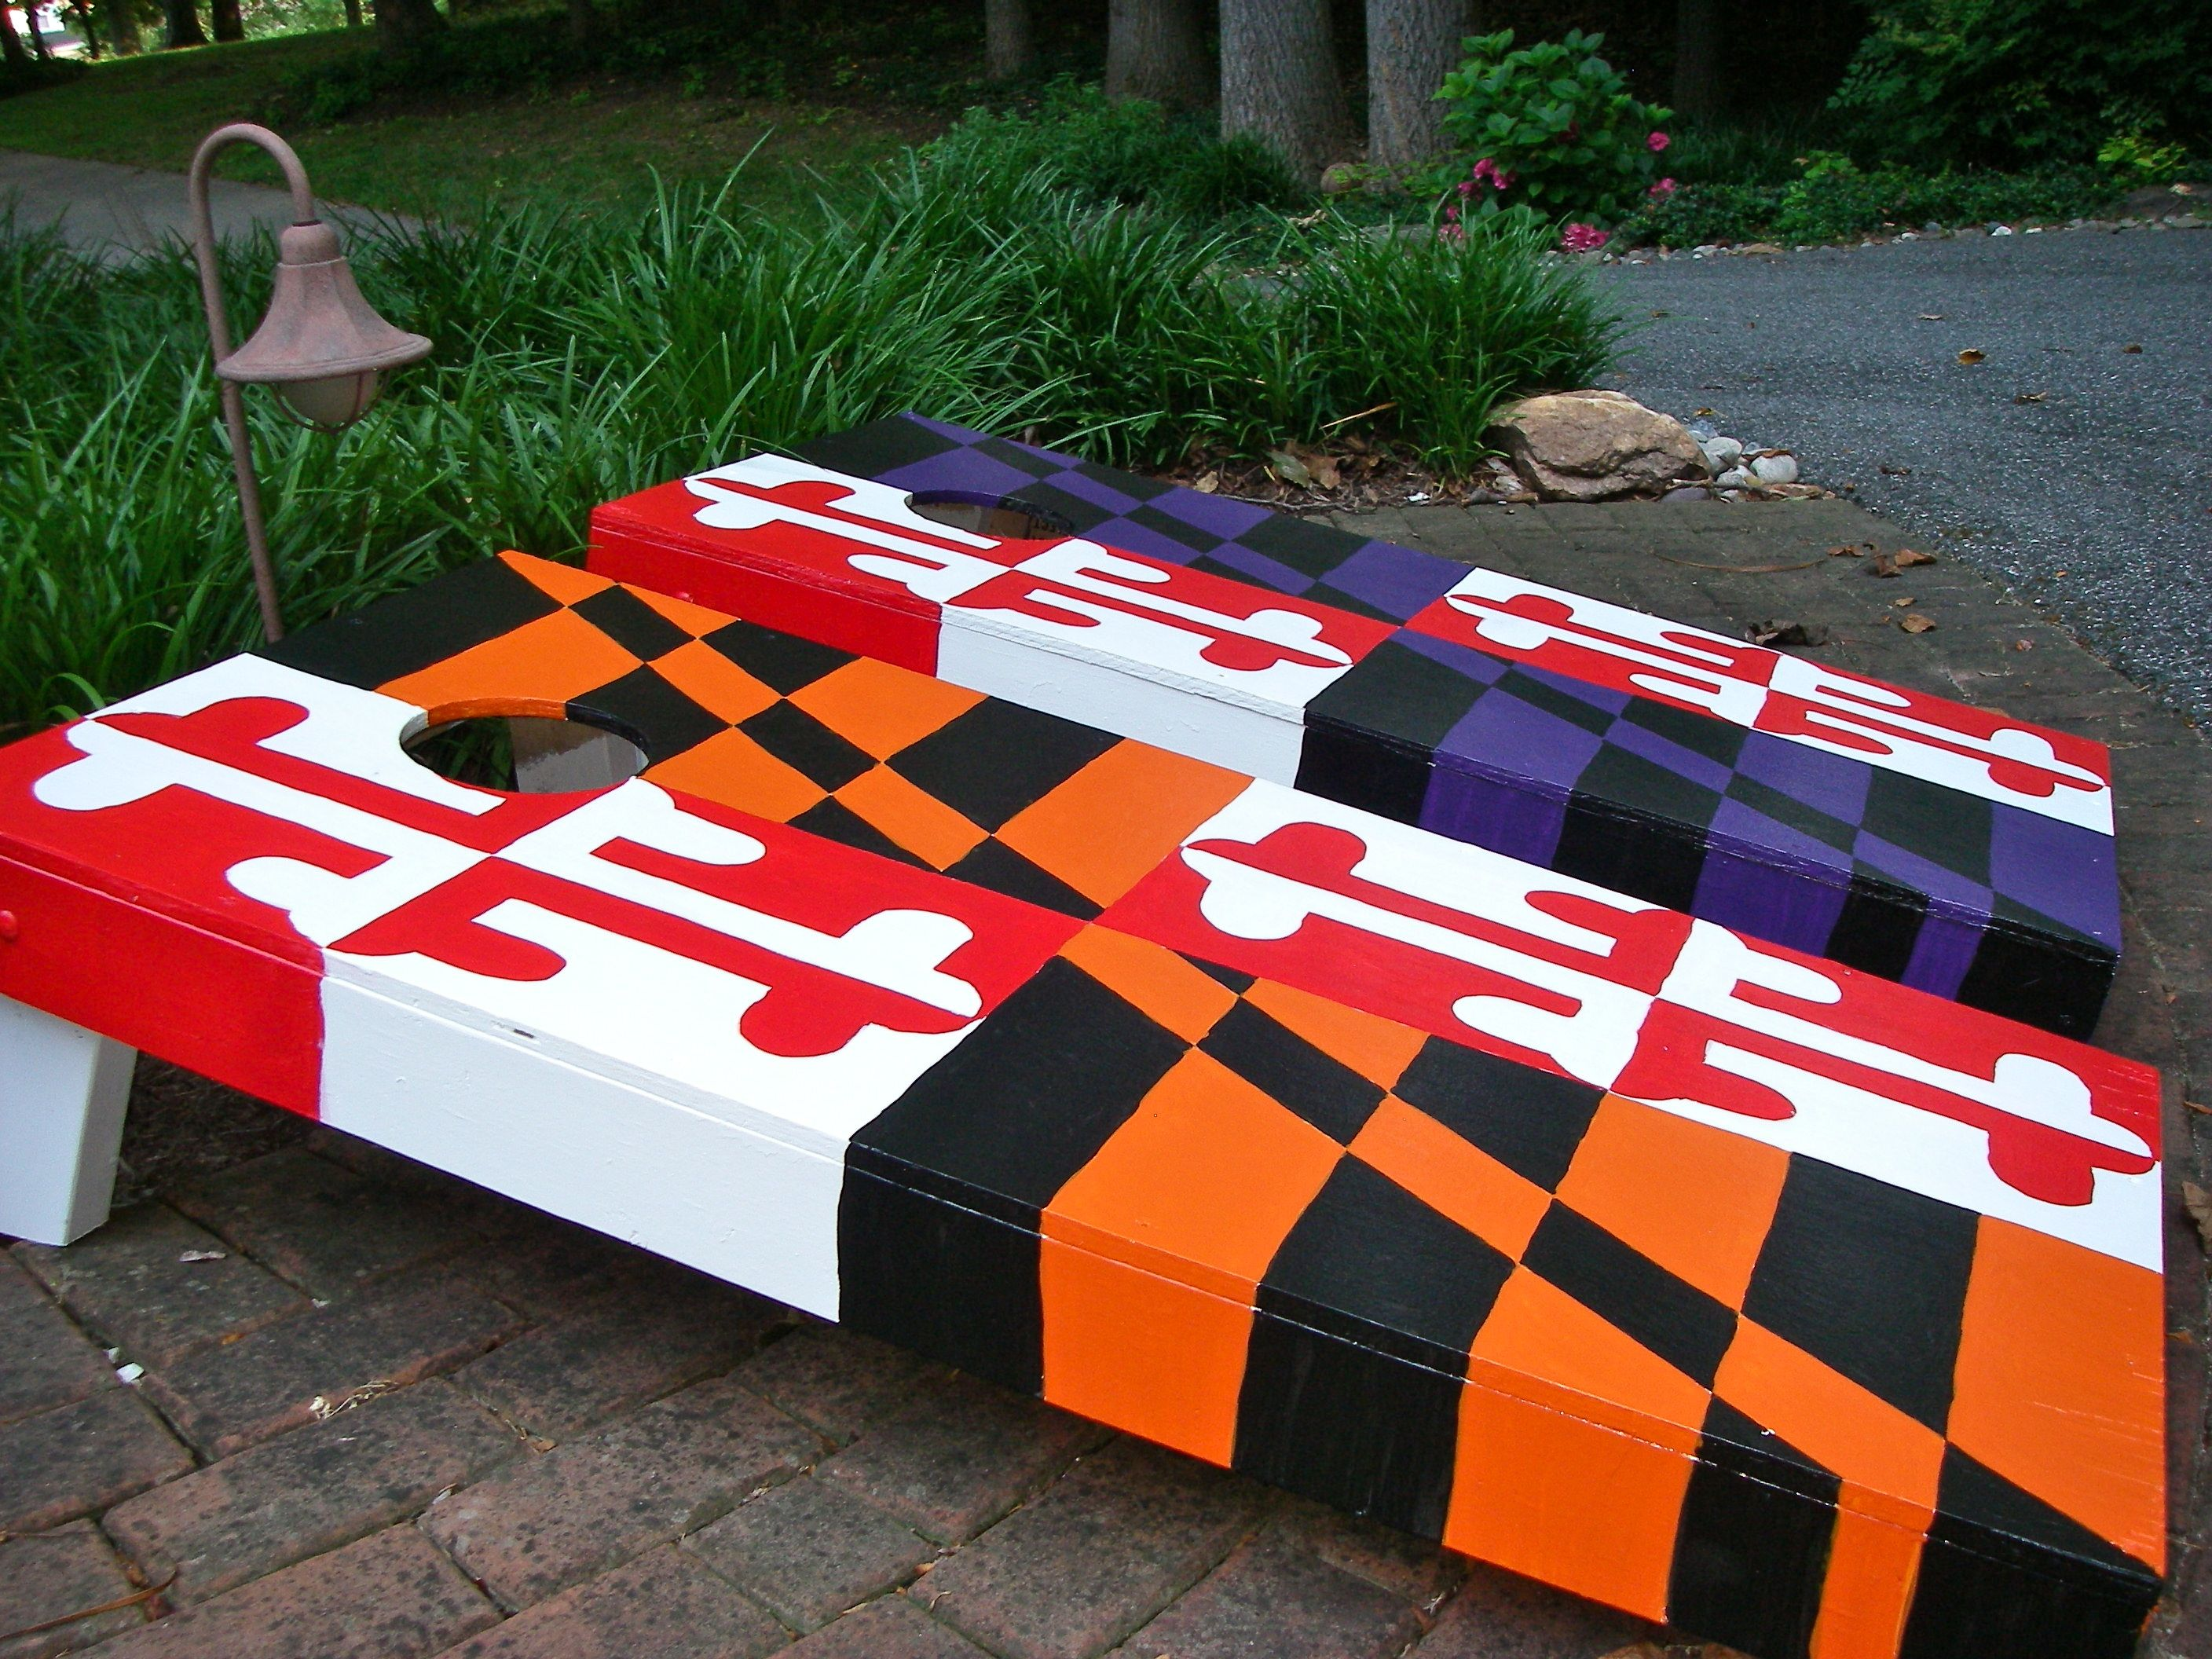 Cornhole Design Ideas diy cornhole boards Find This Pin And More On Diy Cornhole Boards Ideas